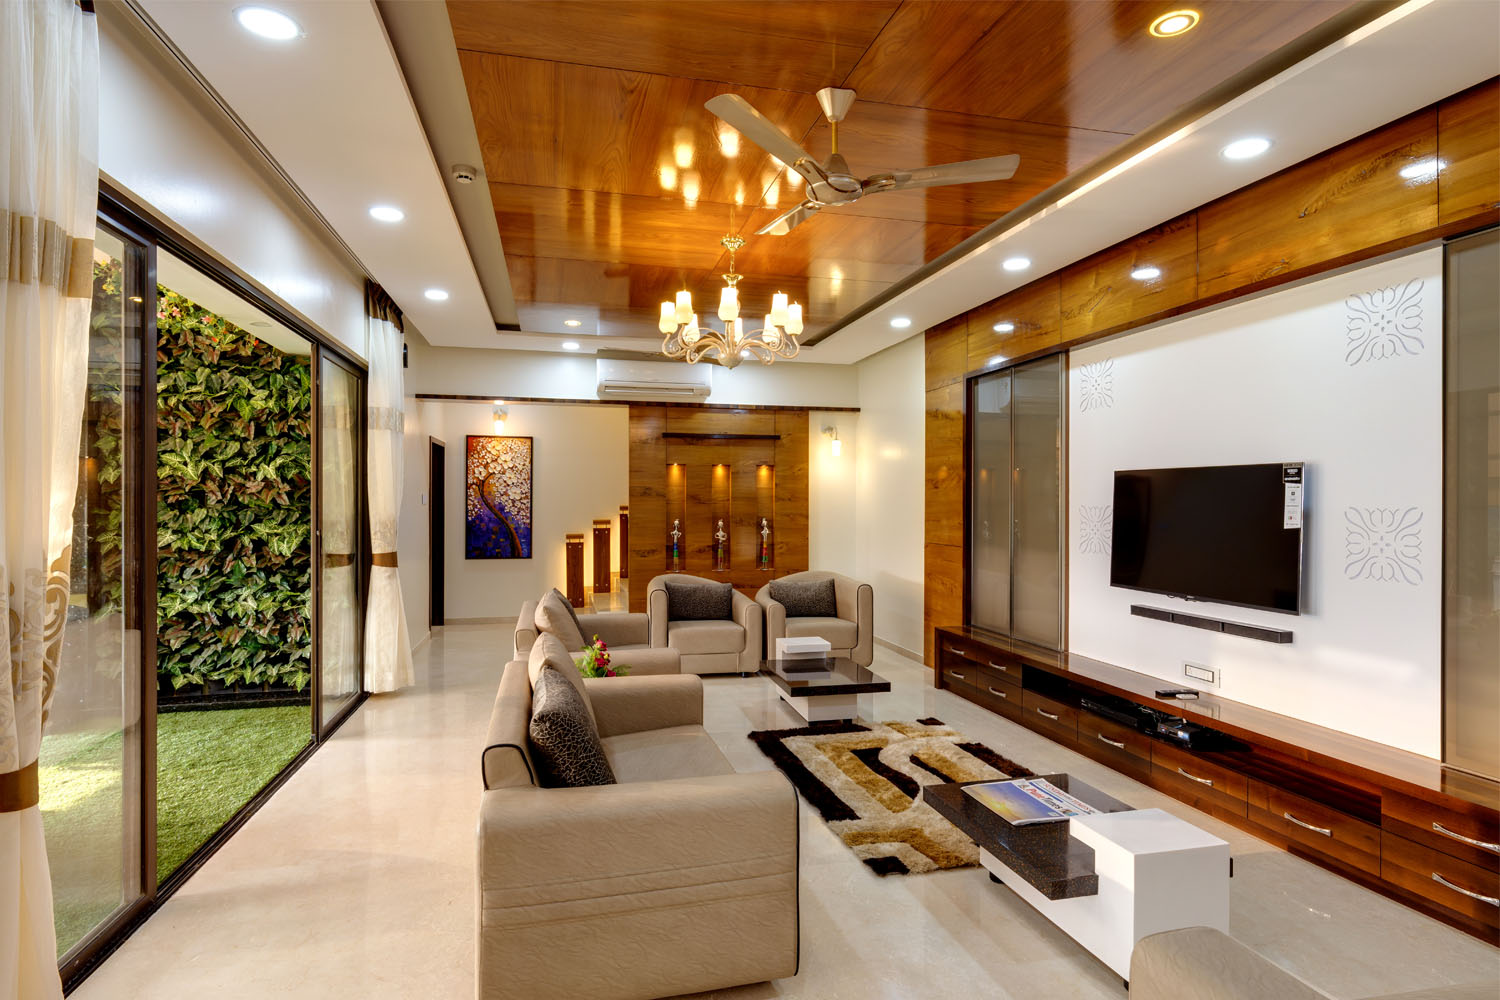 Best interior designer pune nerlekar interior designing for Interior designs in india